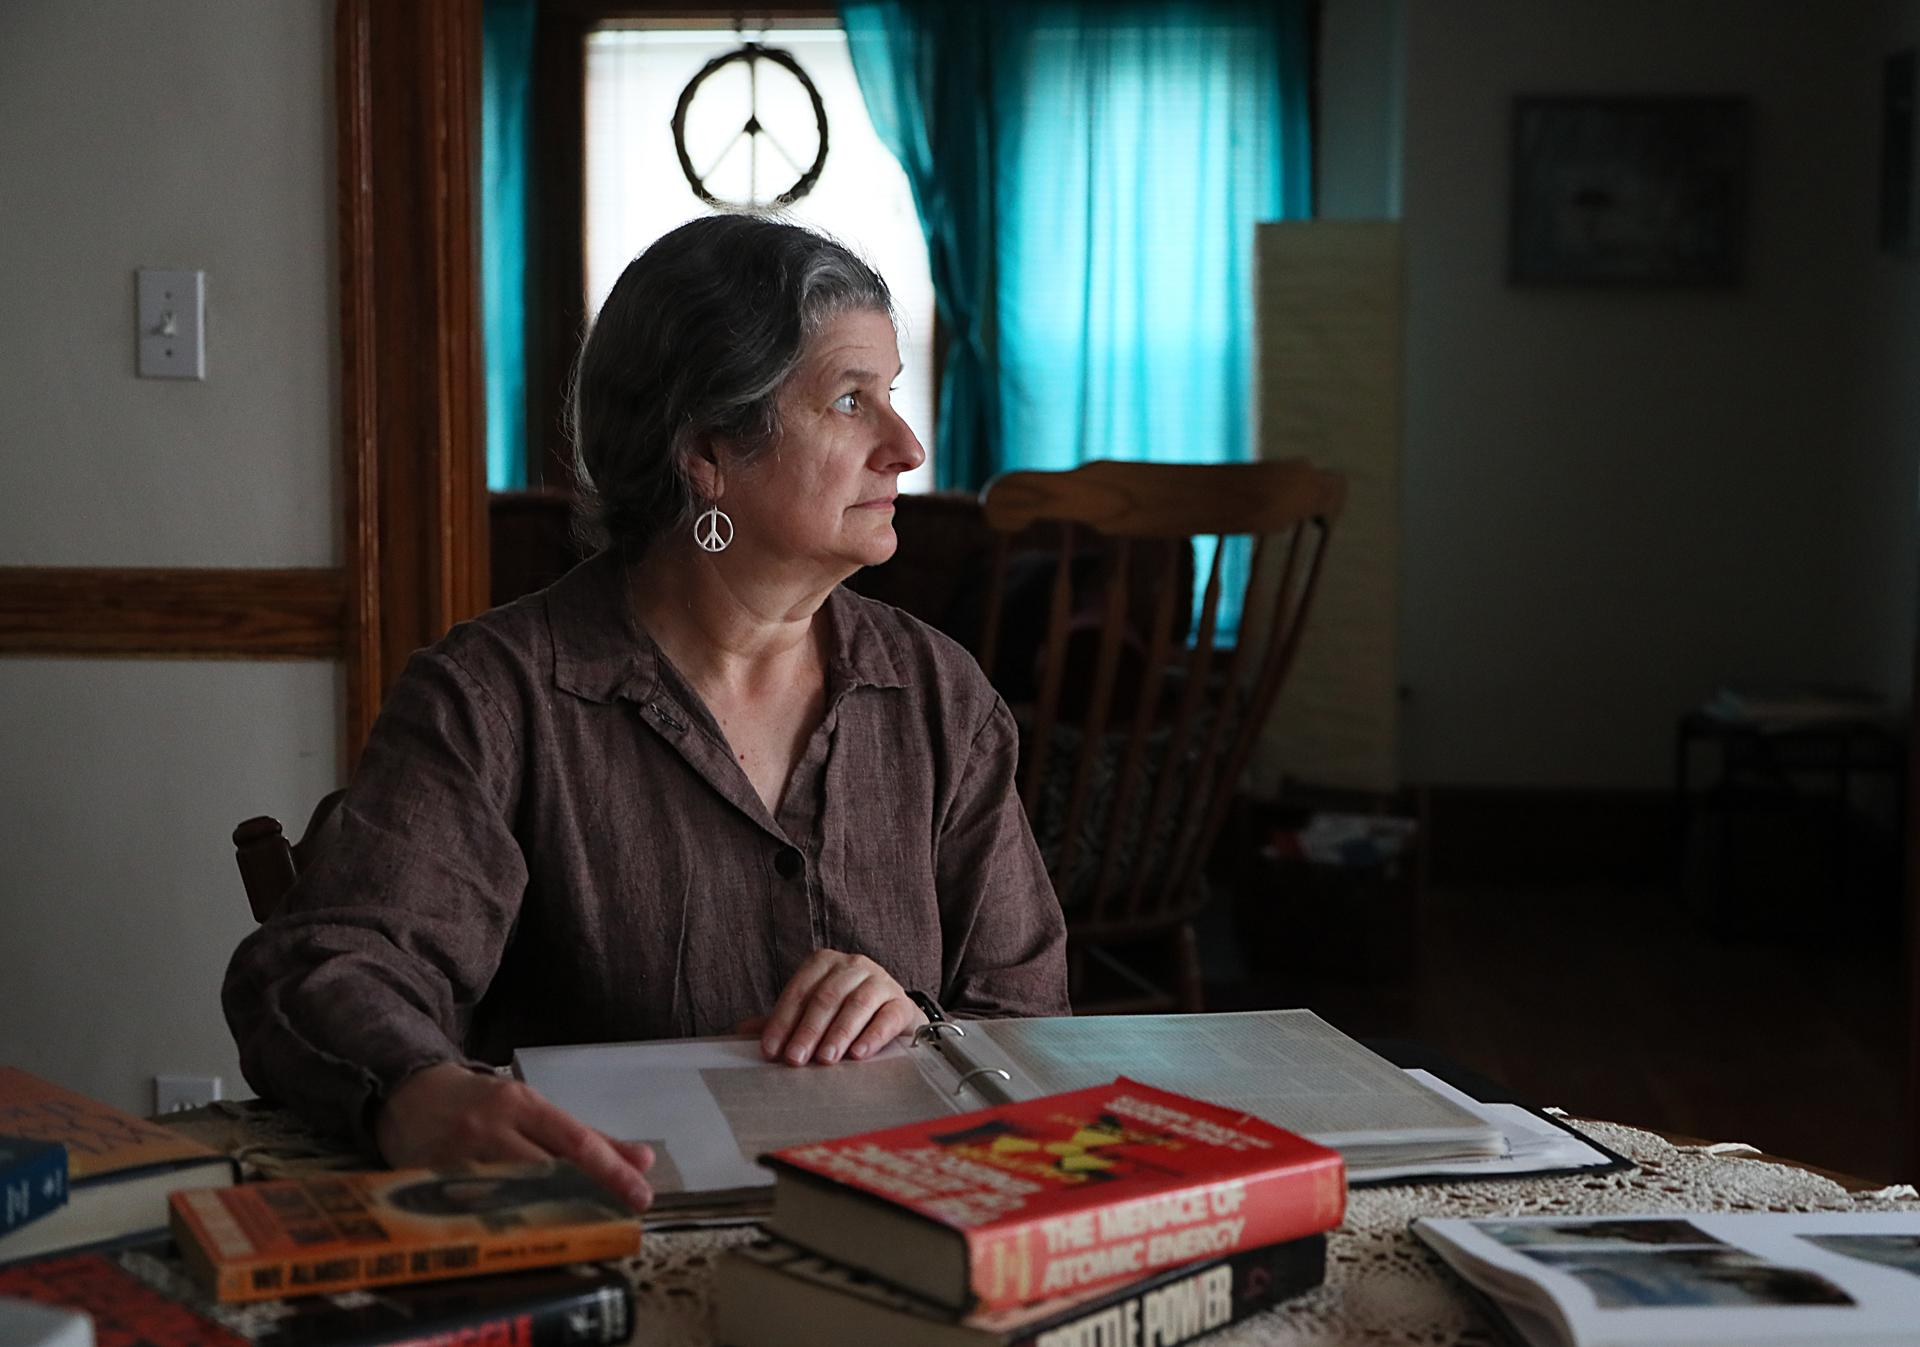 Thea Paneth participated in the landmark protests 40 years ago against the Seabrook nuclear power plant.